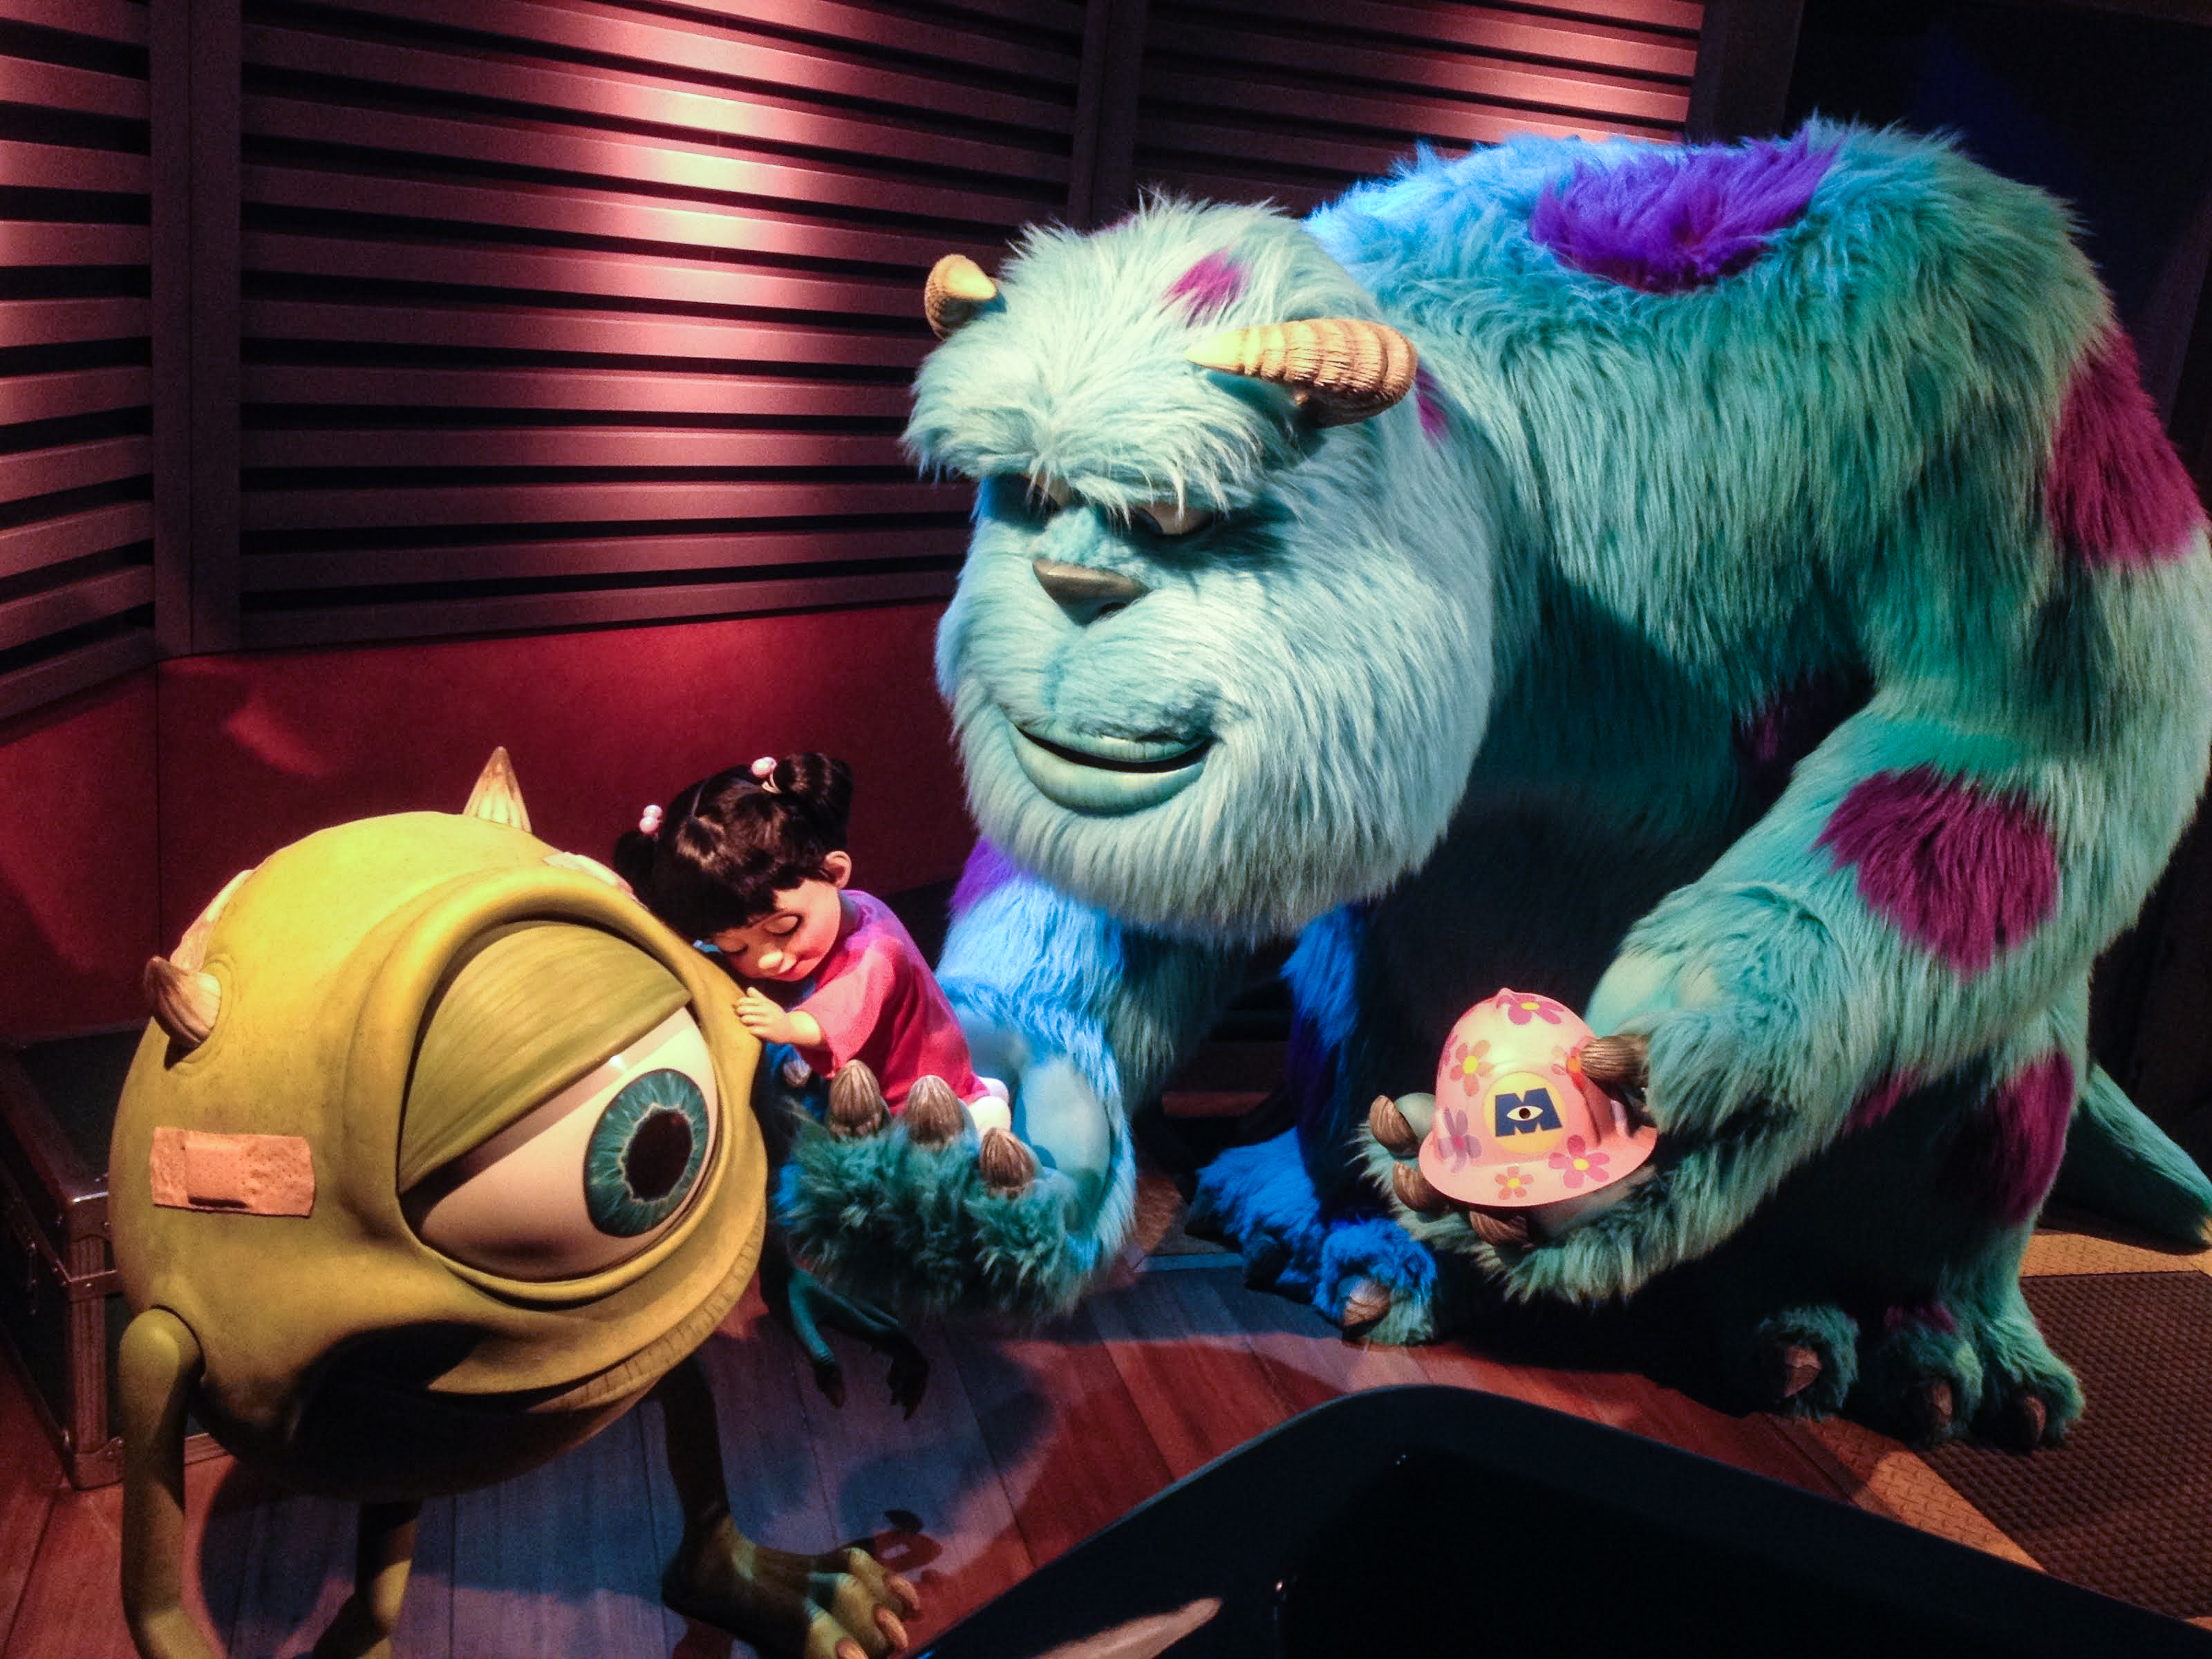 The characters Mike, Sully, and Boo in Monsters, Inc. Ride and Go Seek!